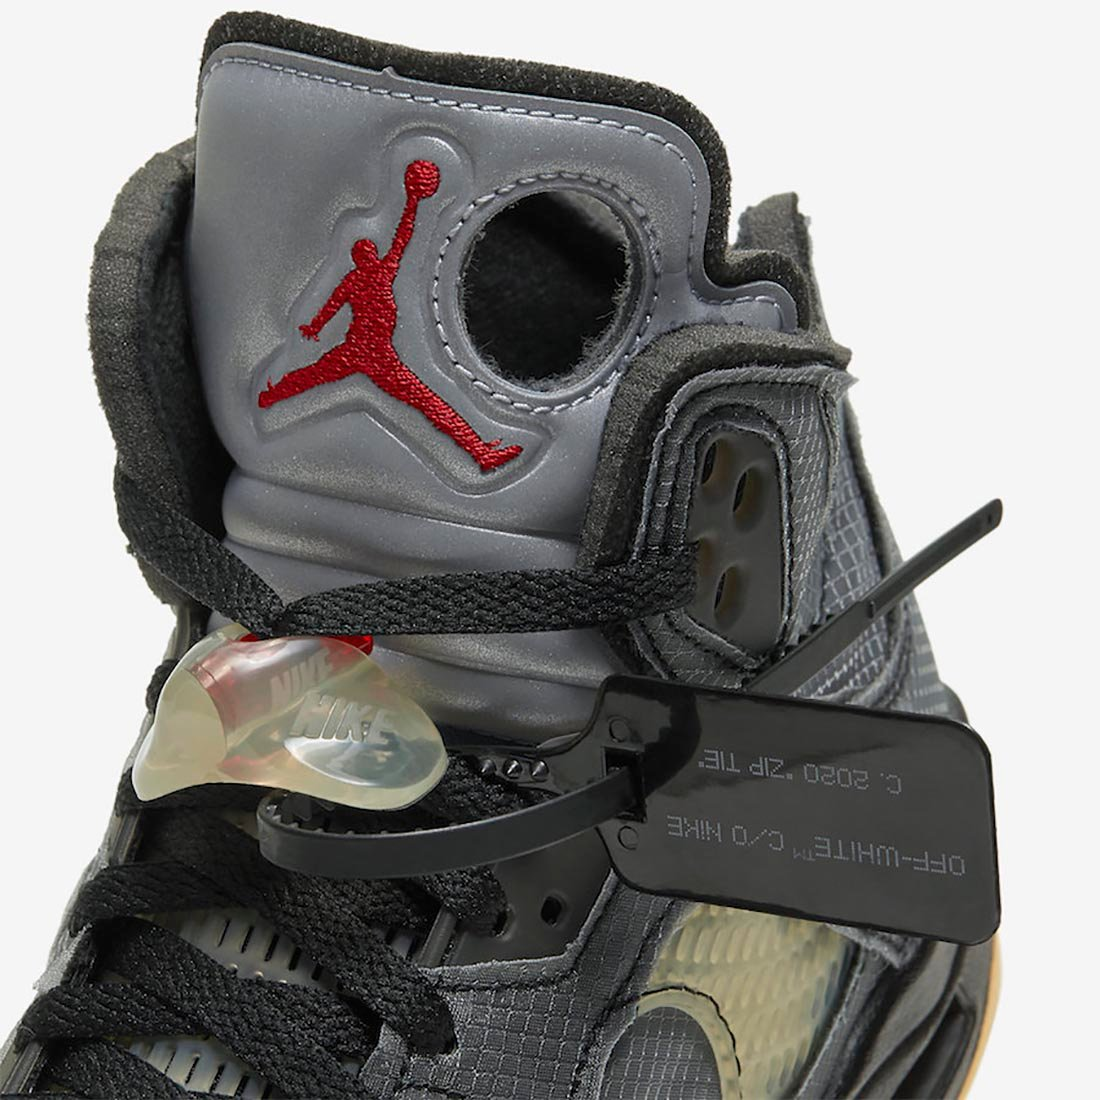 off-white-jordan-5-official-images-07